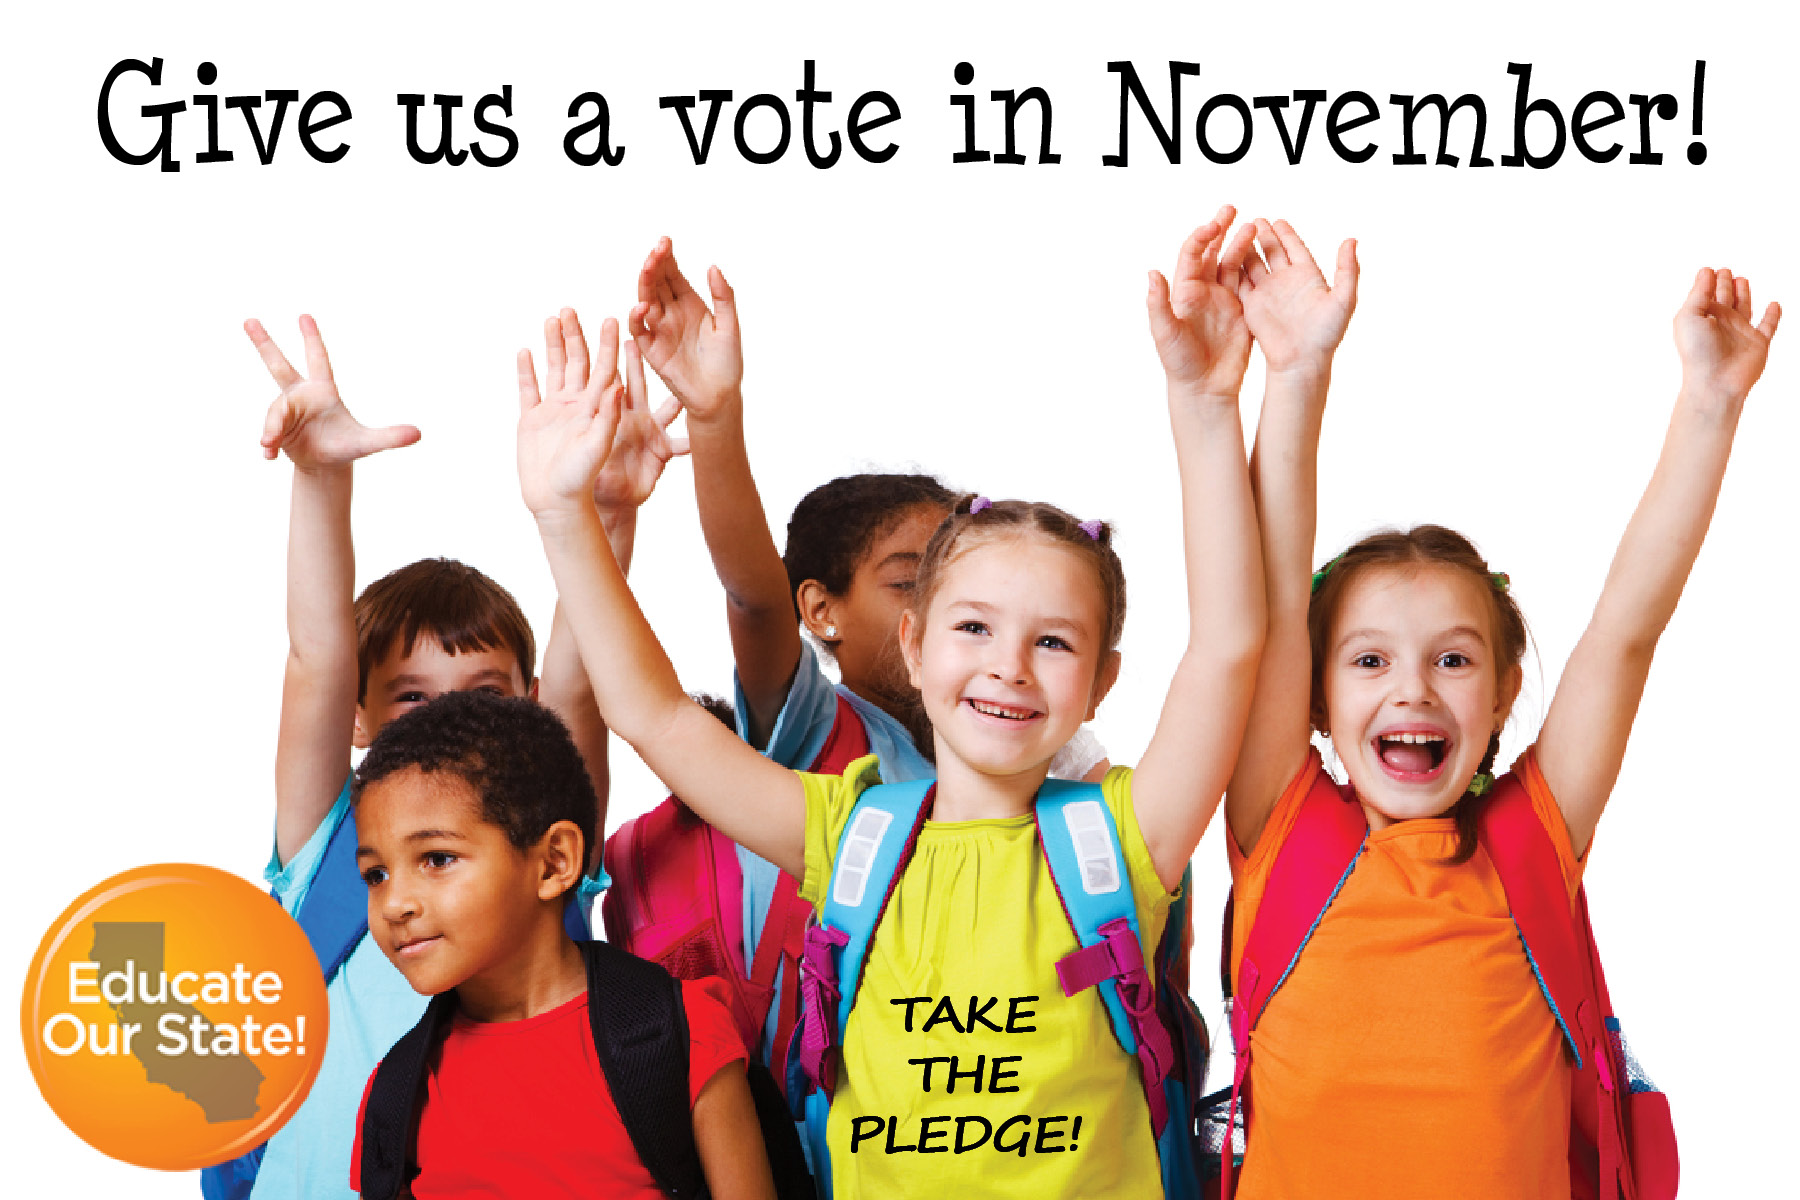 voter_pledge_postcard5.jpg